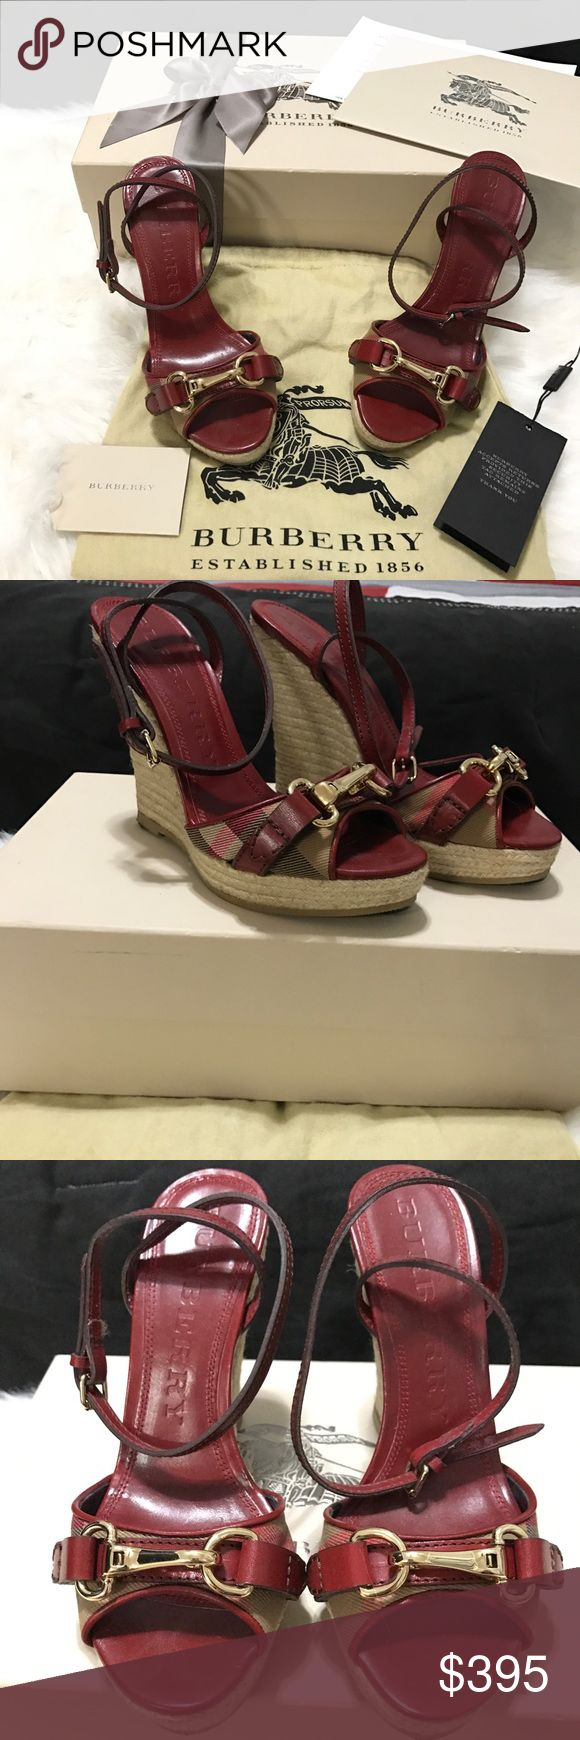 Burberry - Red House Check Espadrilles Authentic! Red Leather Trimming Wrap Around Ankle Closure Buckle Detail Gold Hardware Size 37 - Runs Small In Excellent Condition Includes All Items Photographed: Burberry Red Housecheck Espadrilles Original Shoe Box Two Dustbags Original Receipt Retails: $395 + Tax Reasonable offers welcome! Burberry Shoes Espadrilles